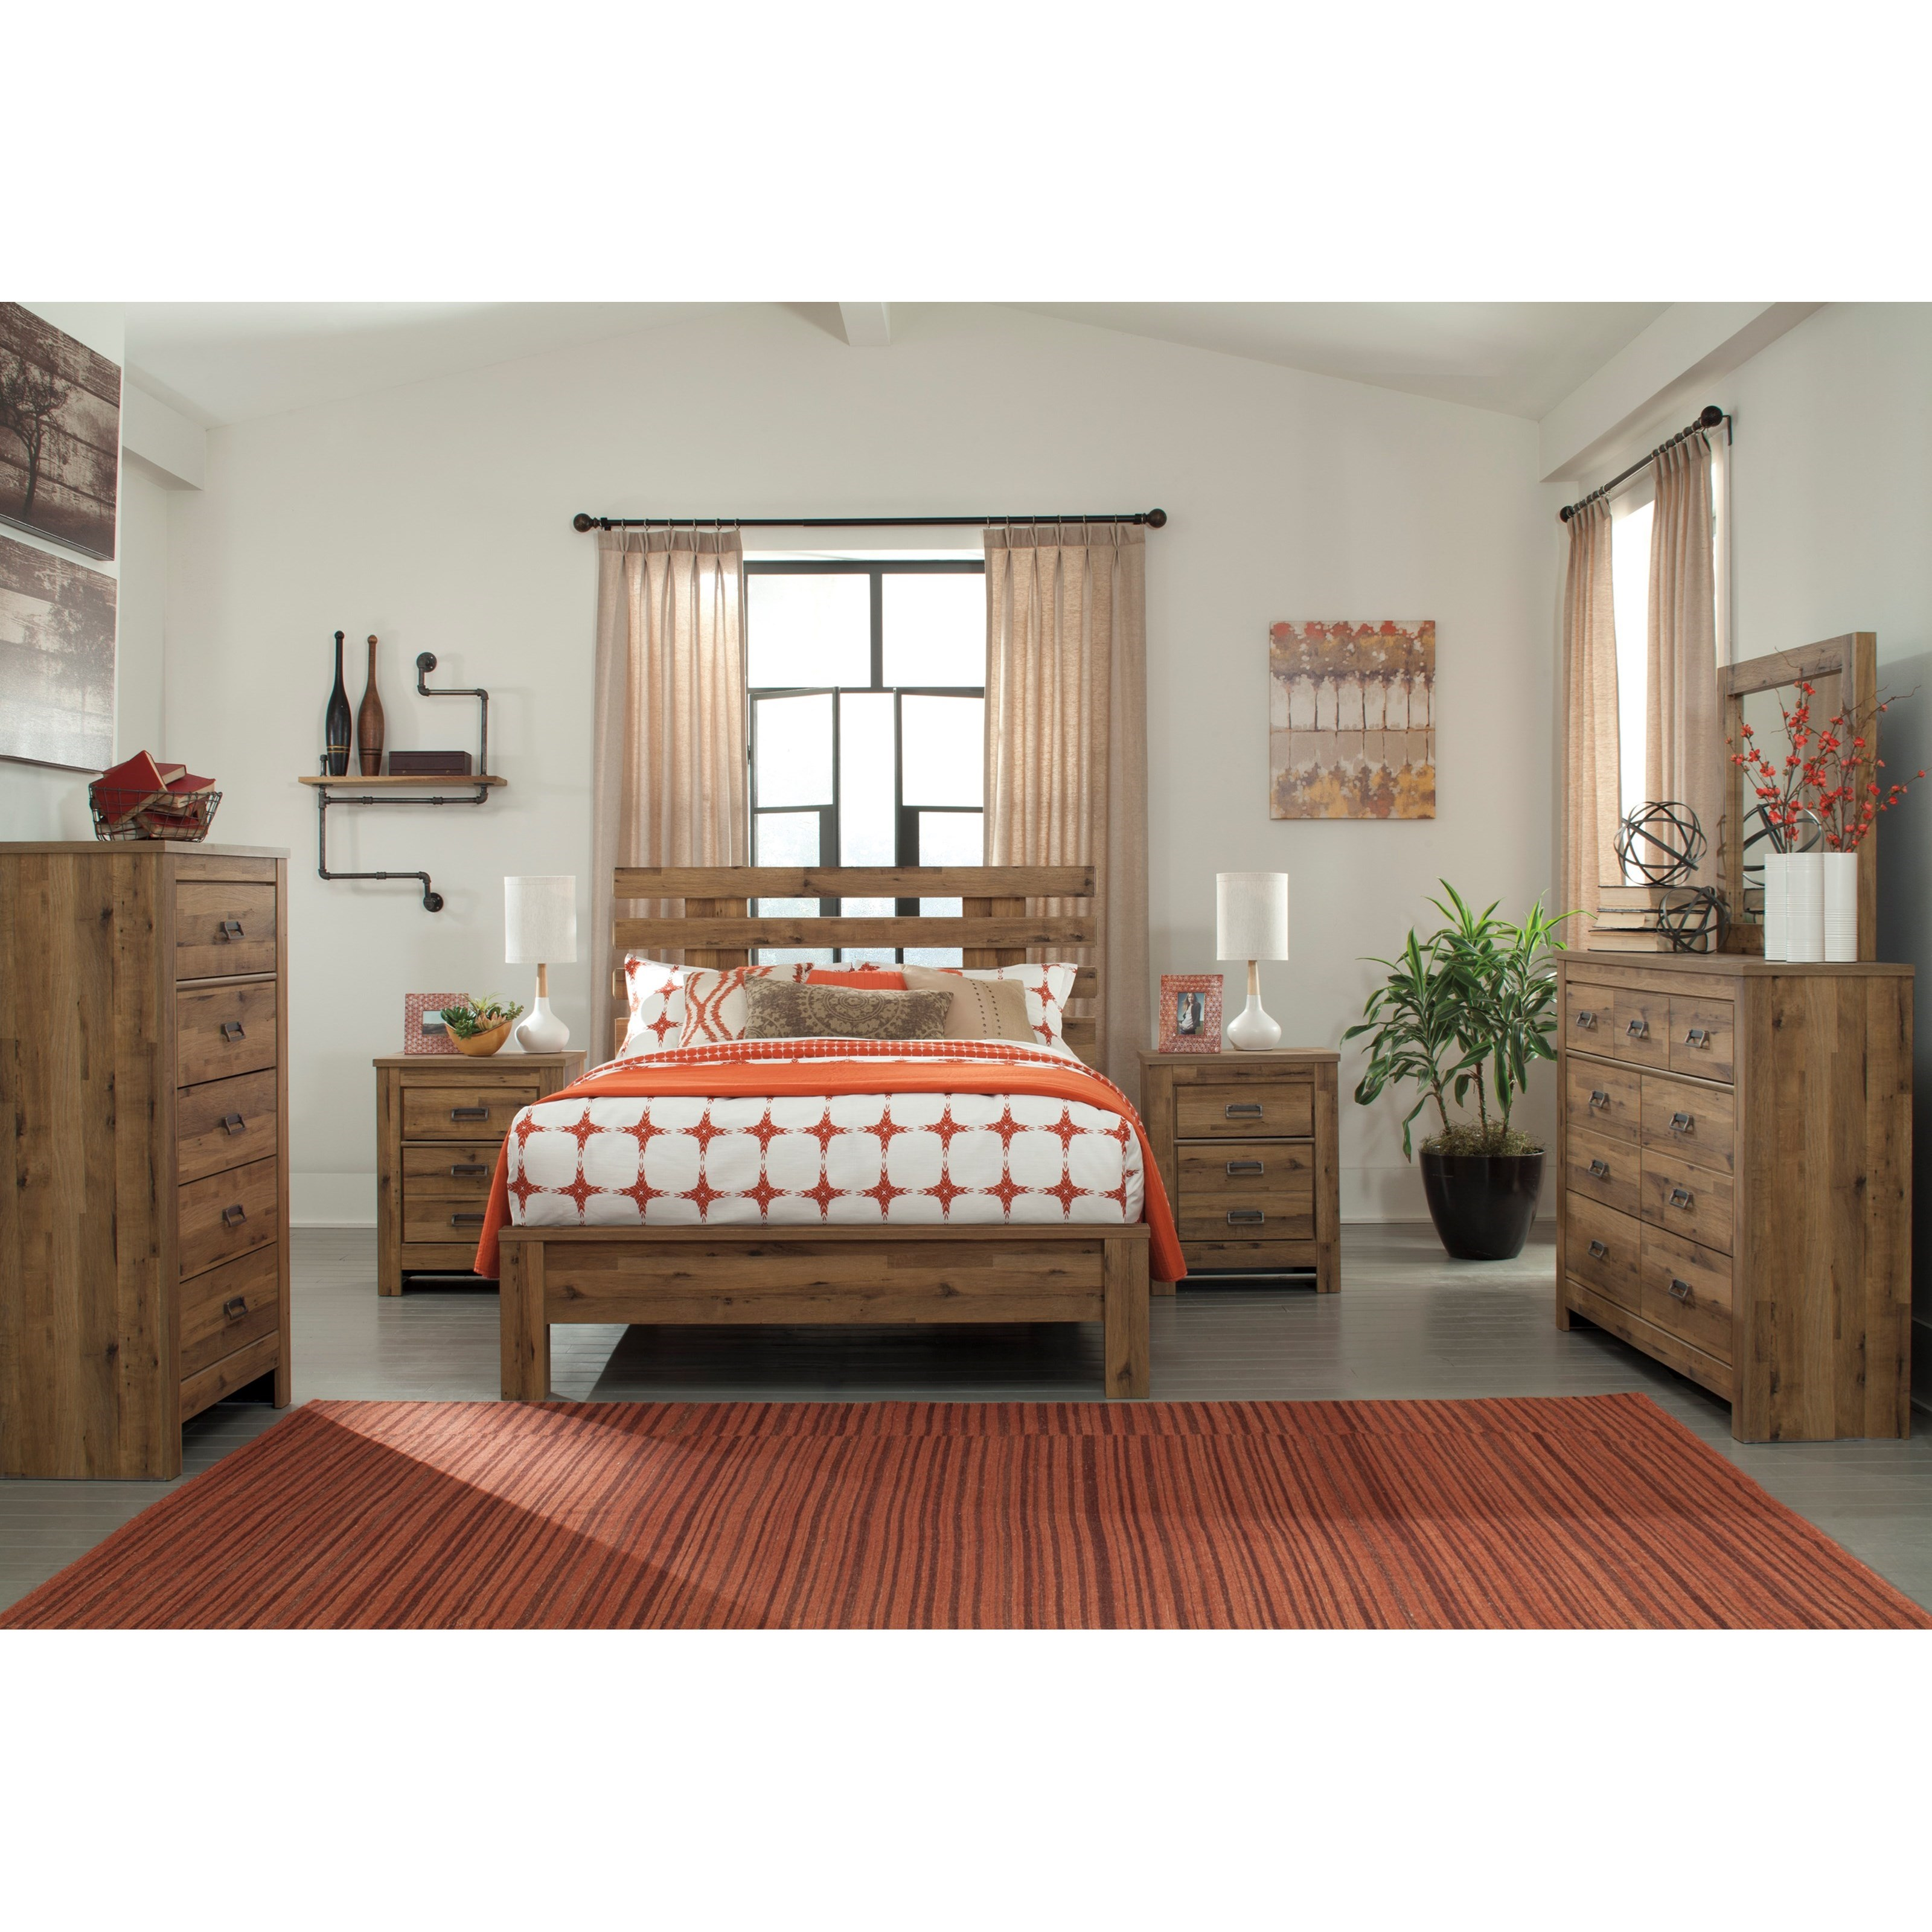 Signature Design by Ashley Simon 5PC Queen Bedroom Set - Item Number: B369 Q Bedroom Group 2